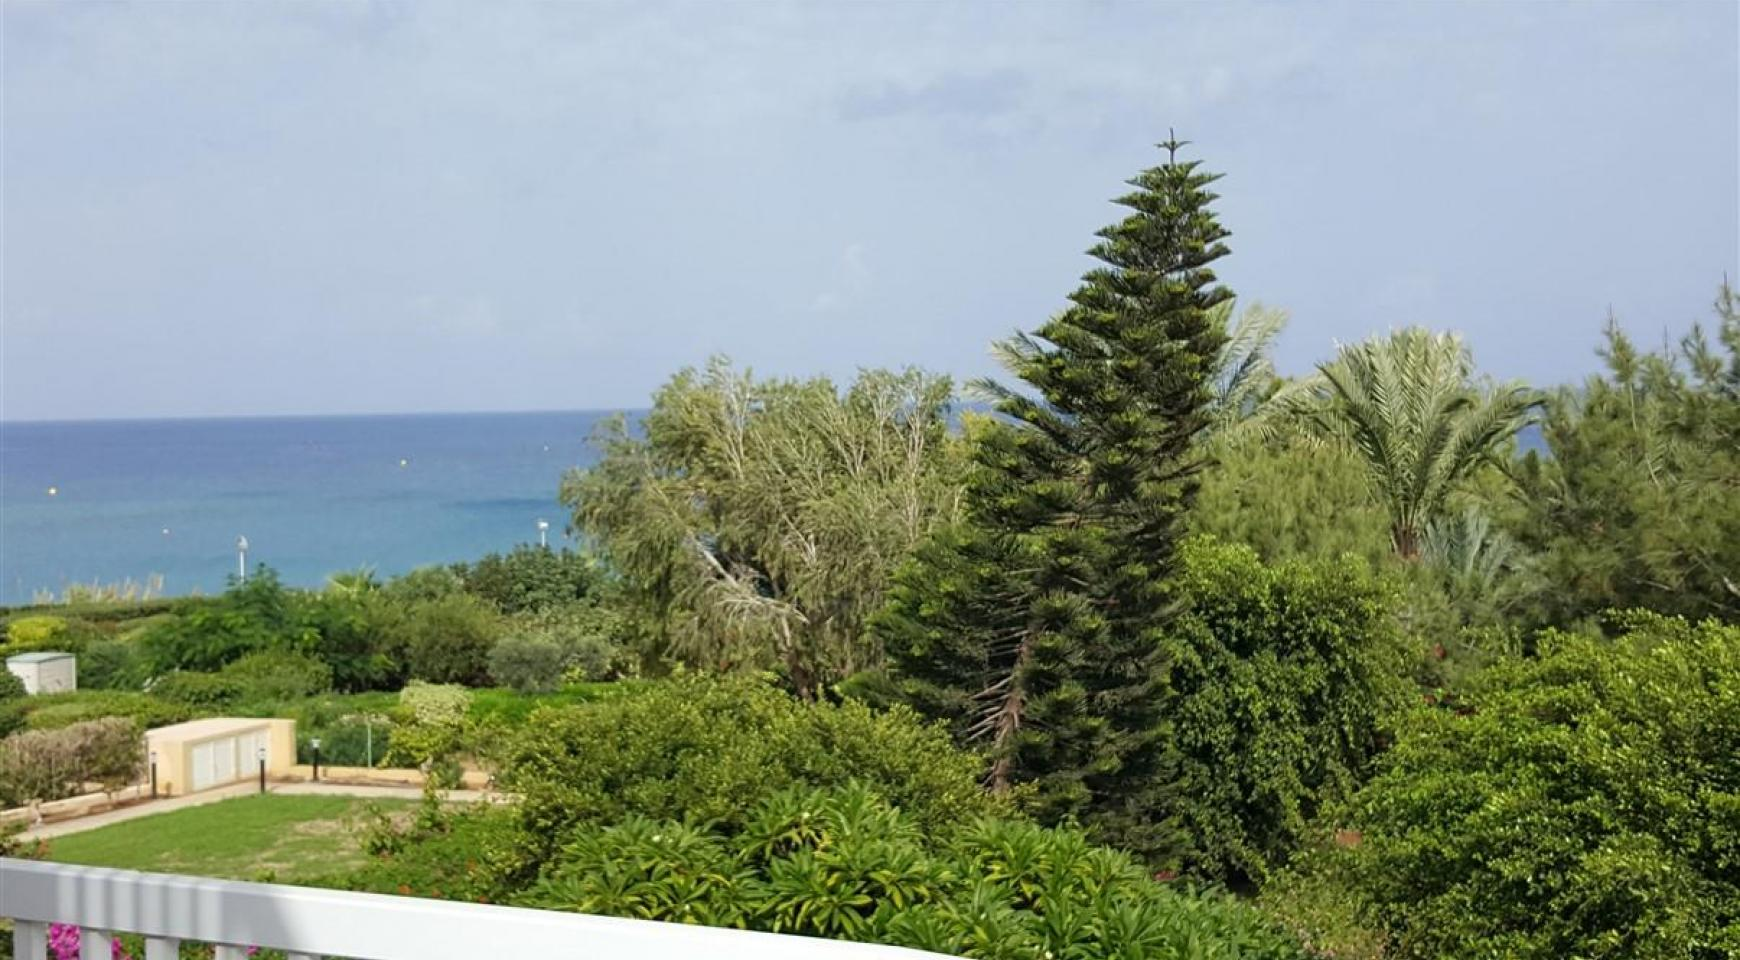 3 Villas with Sea Views in the Prime Seafront Location - 2